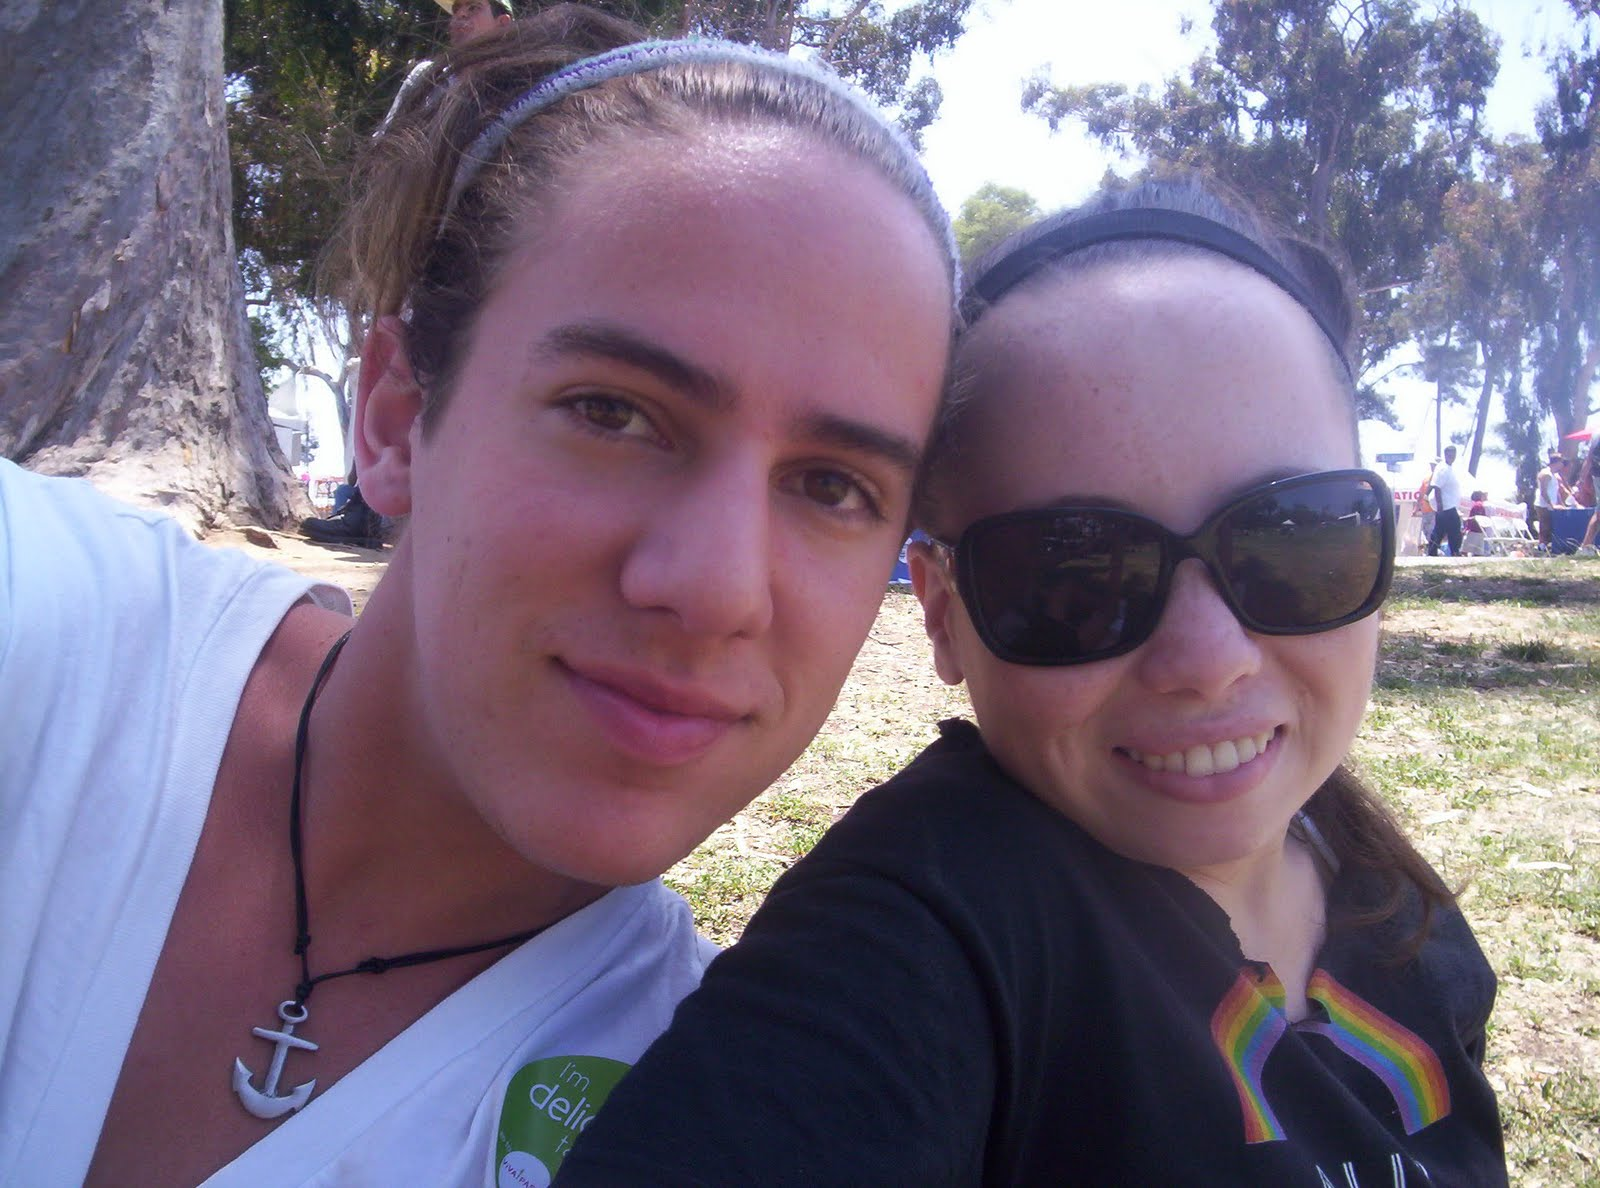 (Me and my best friend, William, at Gay Pride)